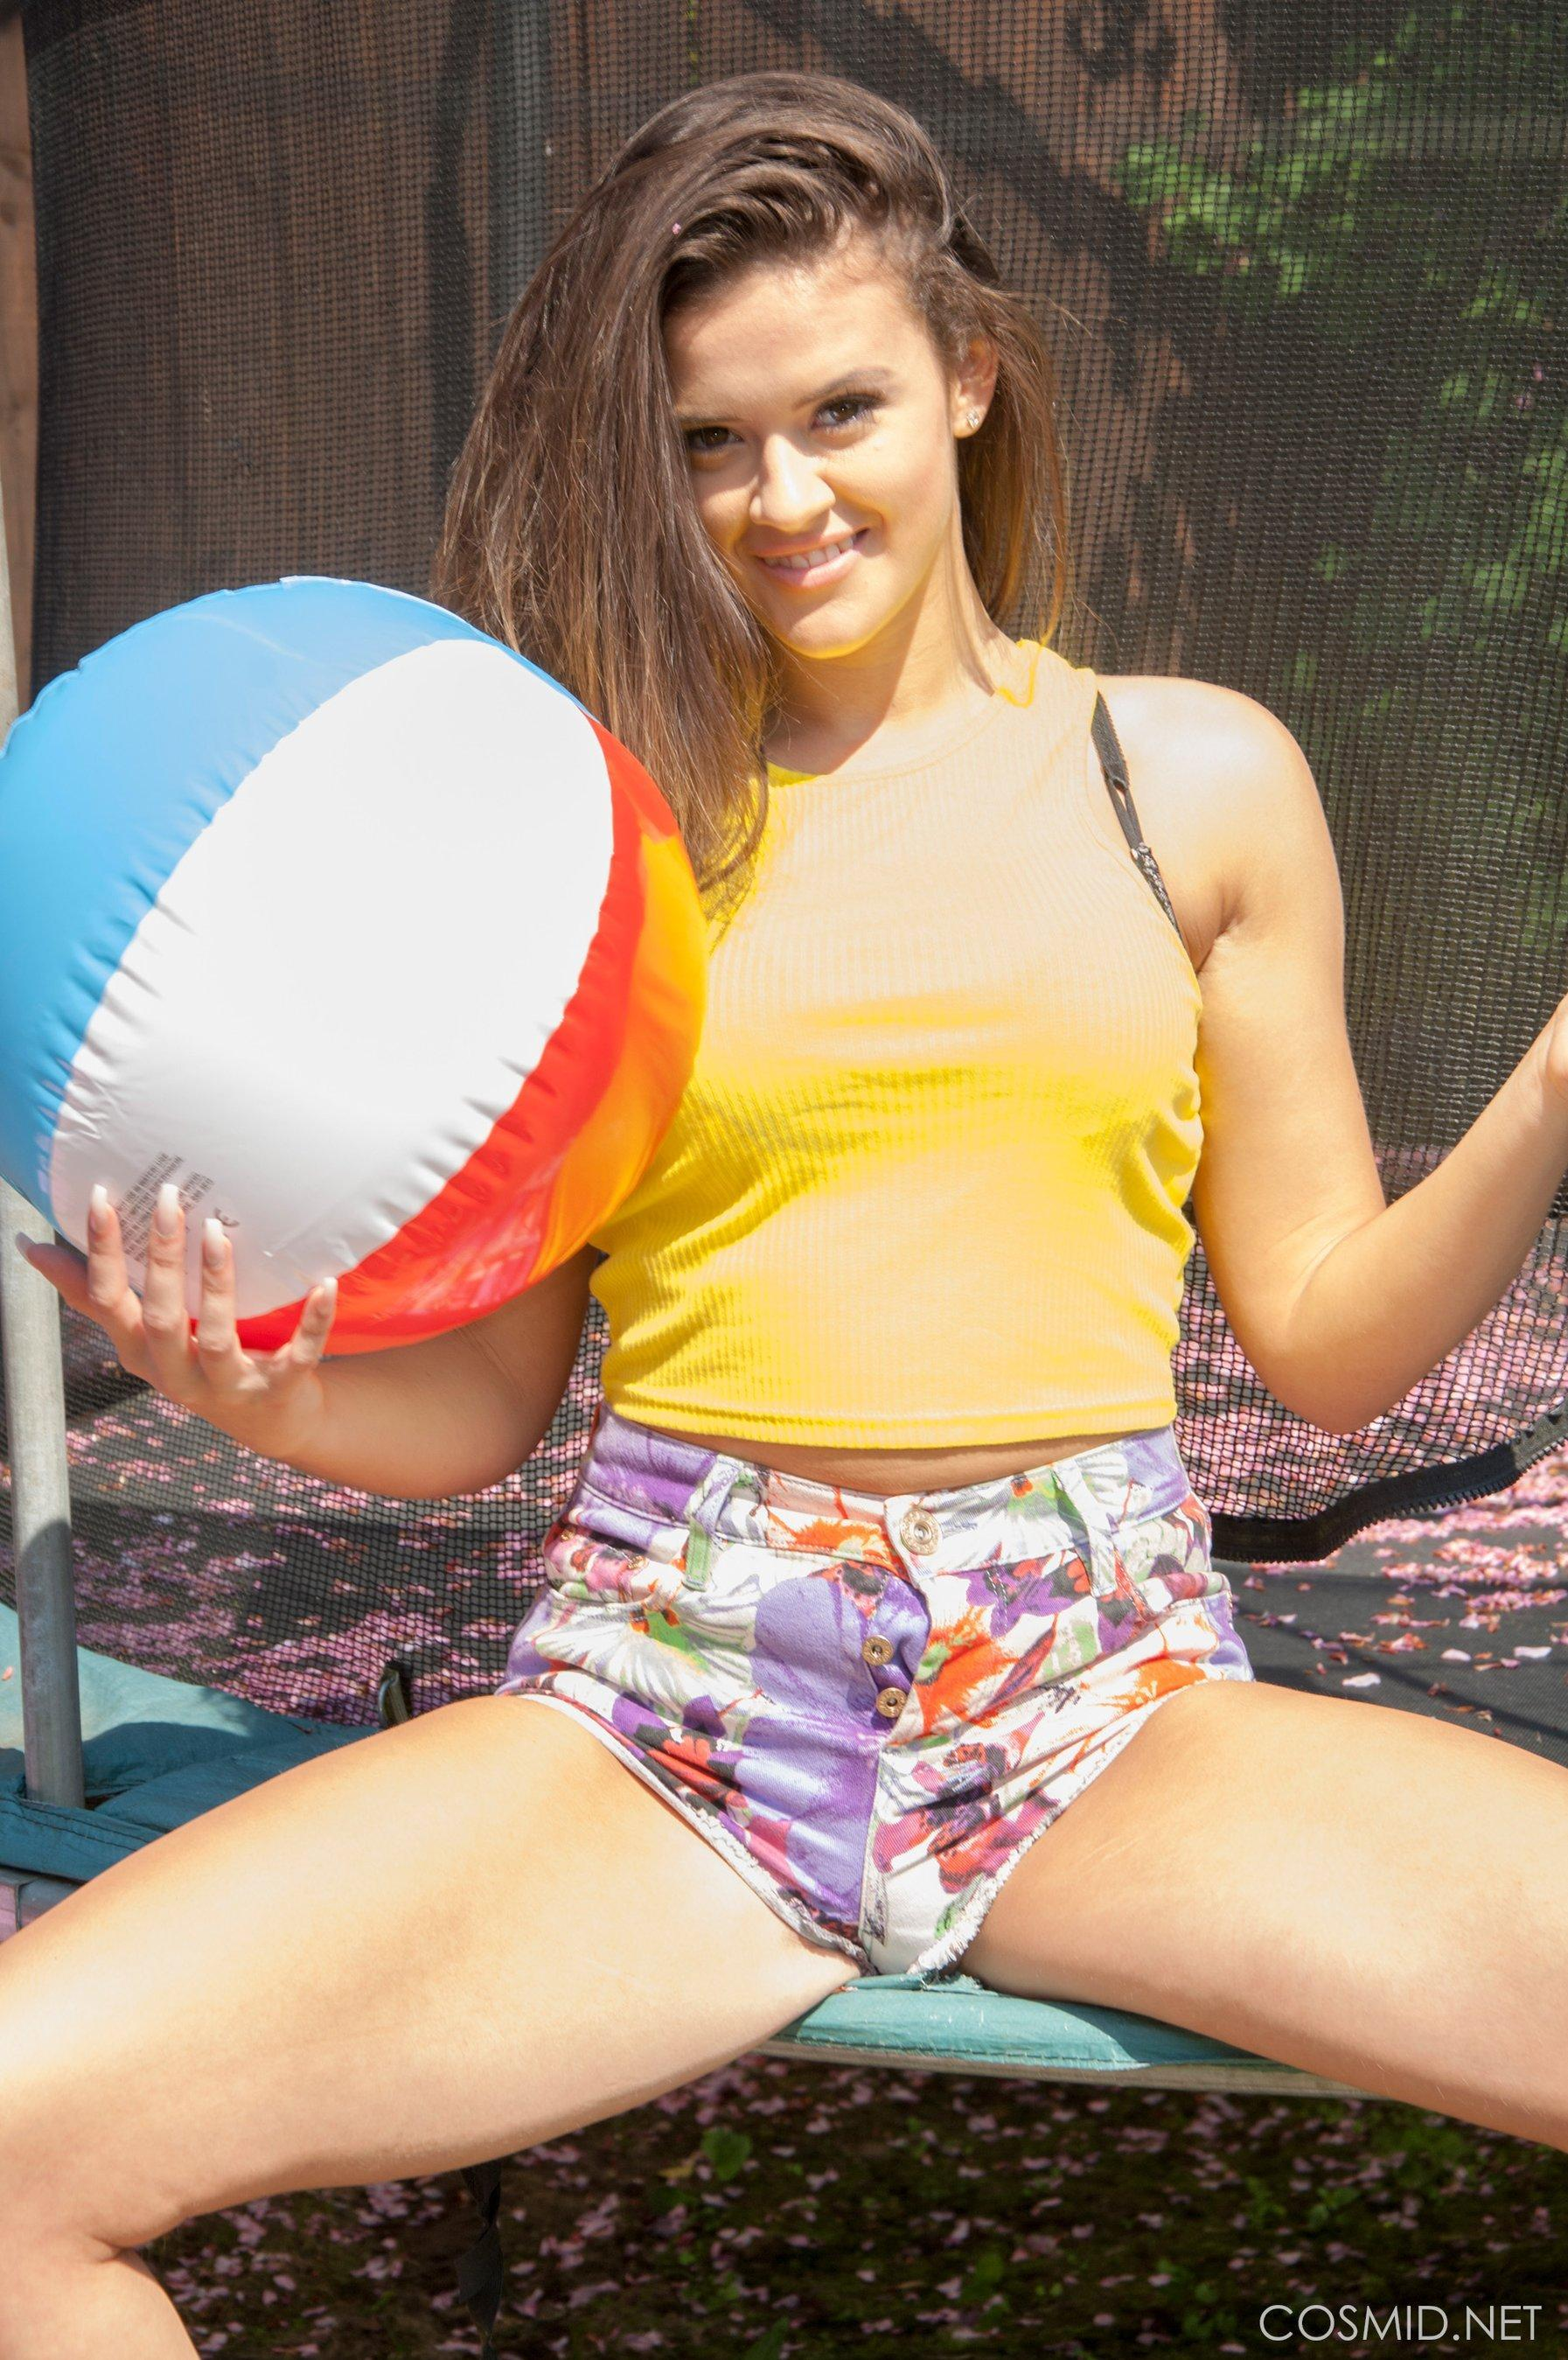 Brooke Willow strips on trampoline | Coed Cherry photo 4